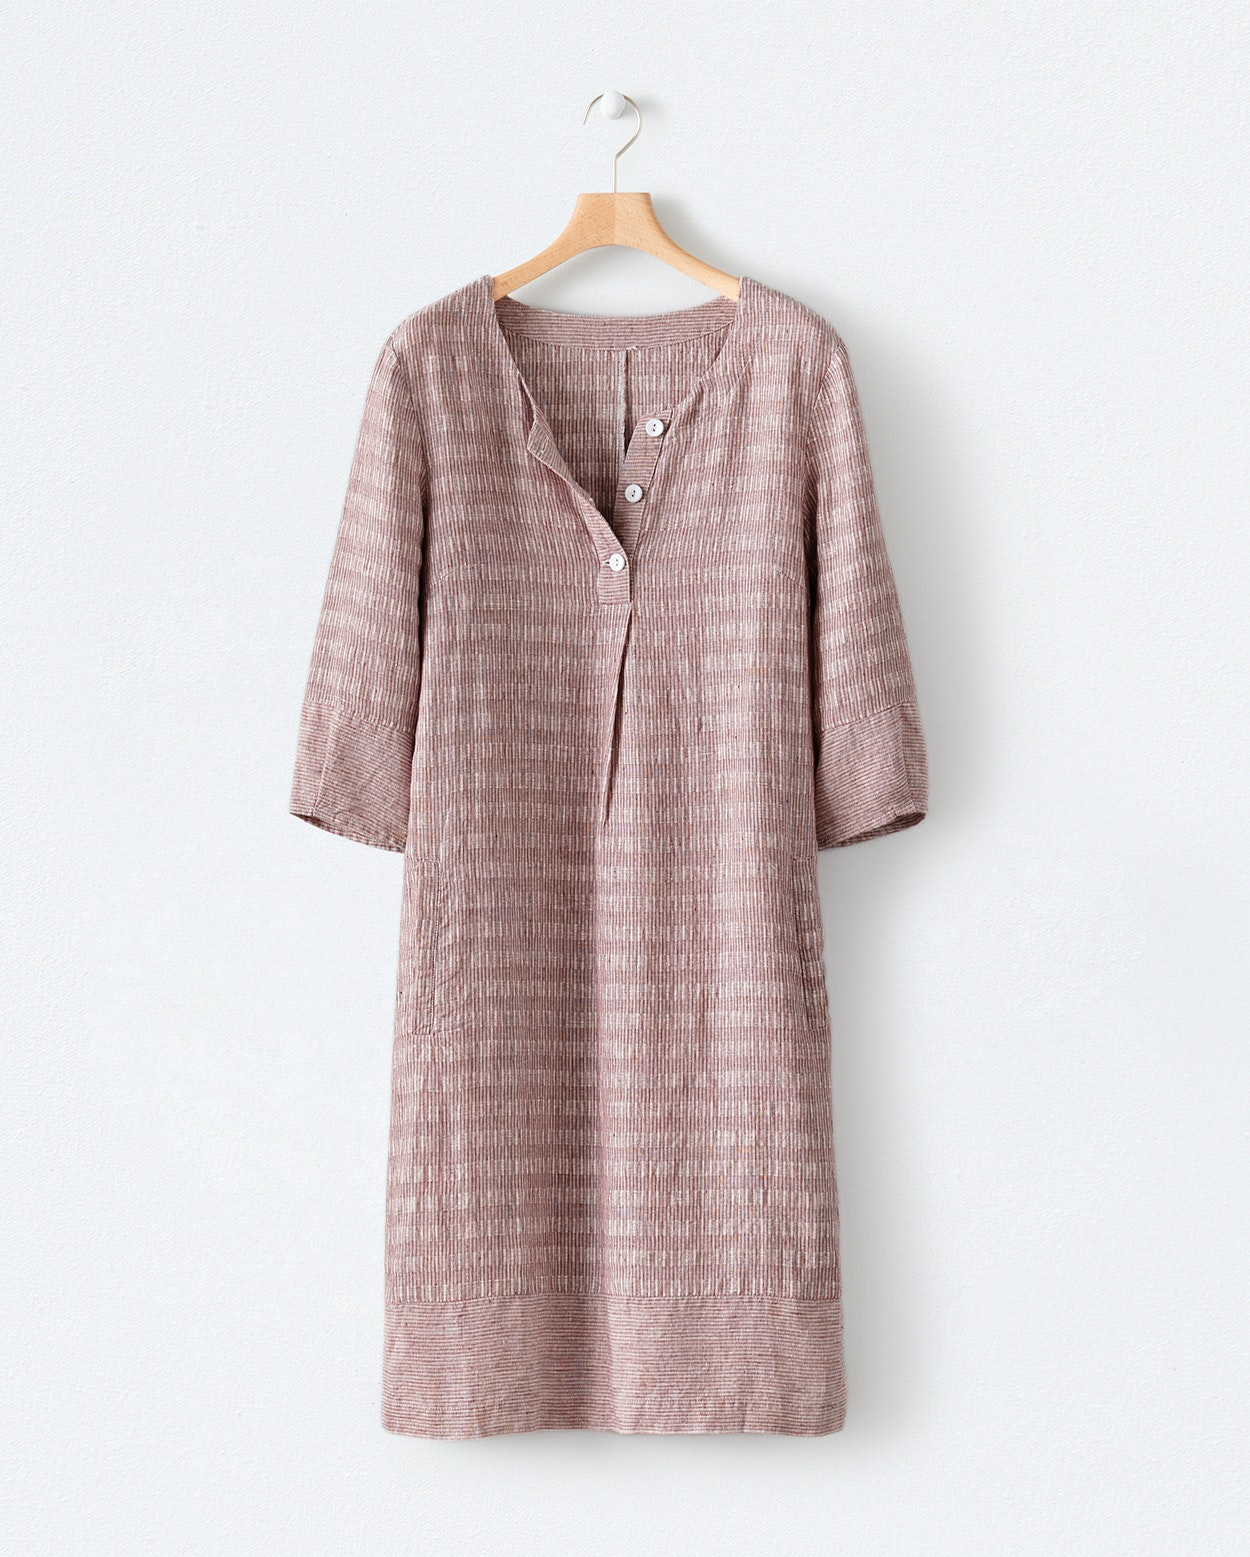 c685509975 Product Image of Check and stripe linen dress ...